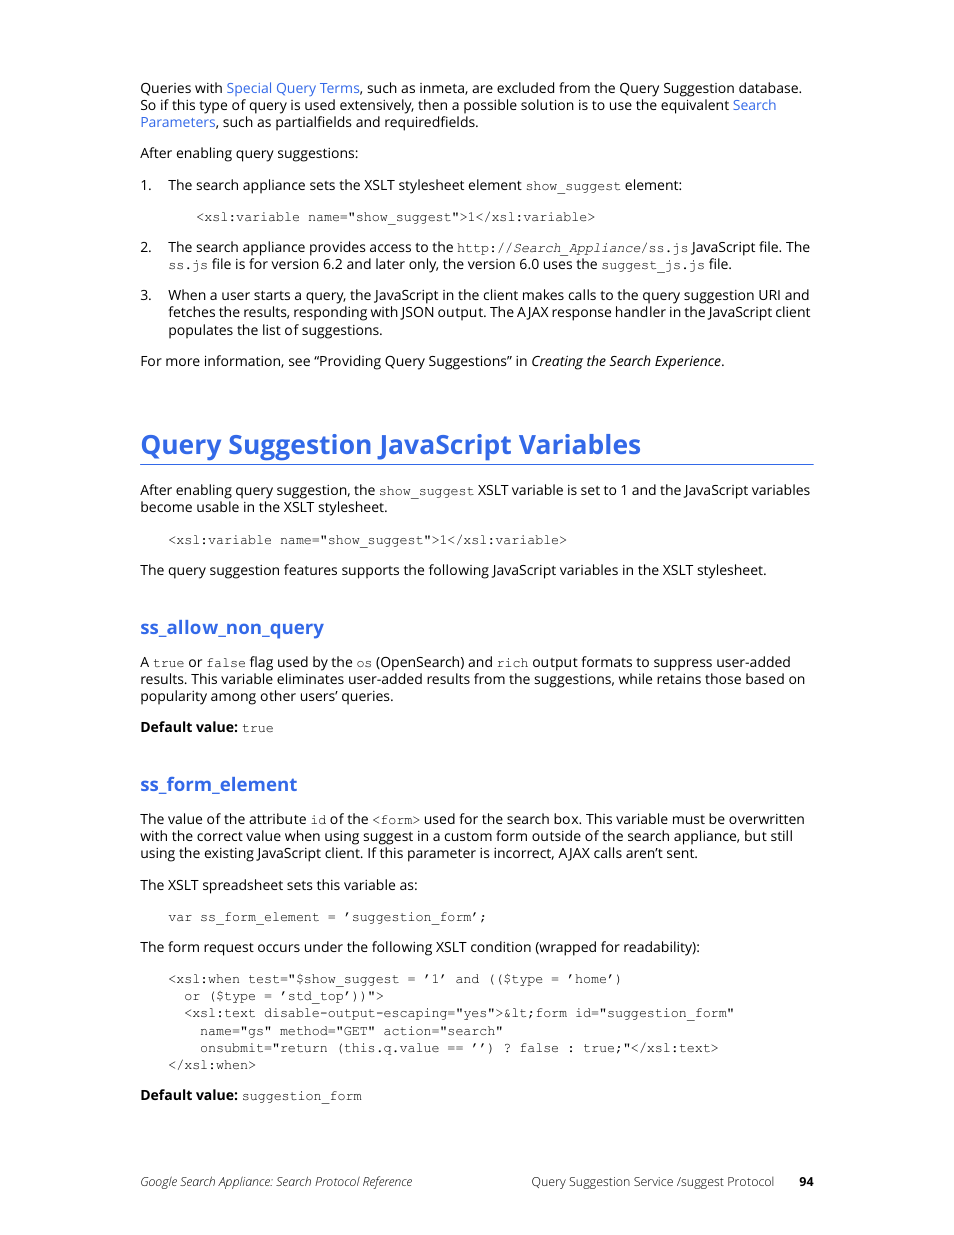 Query suggestion javascript variables, Ss_allow_non_query